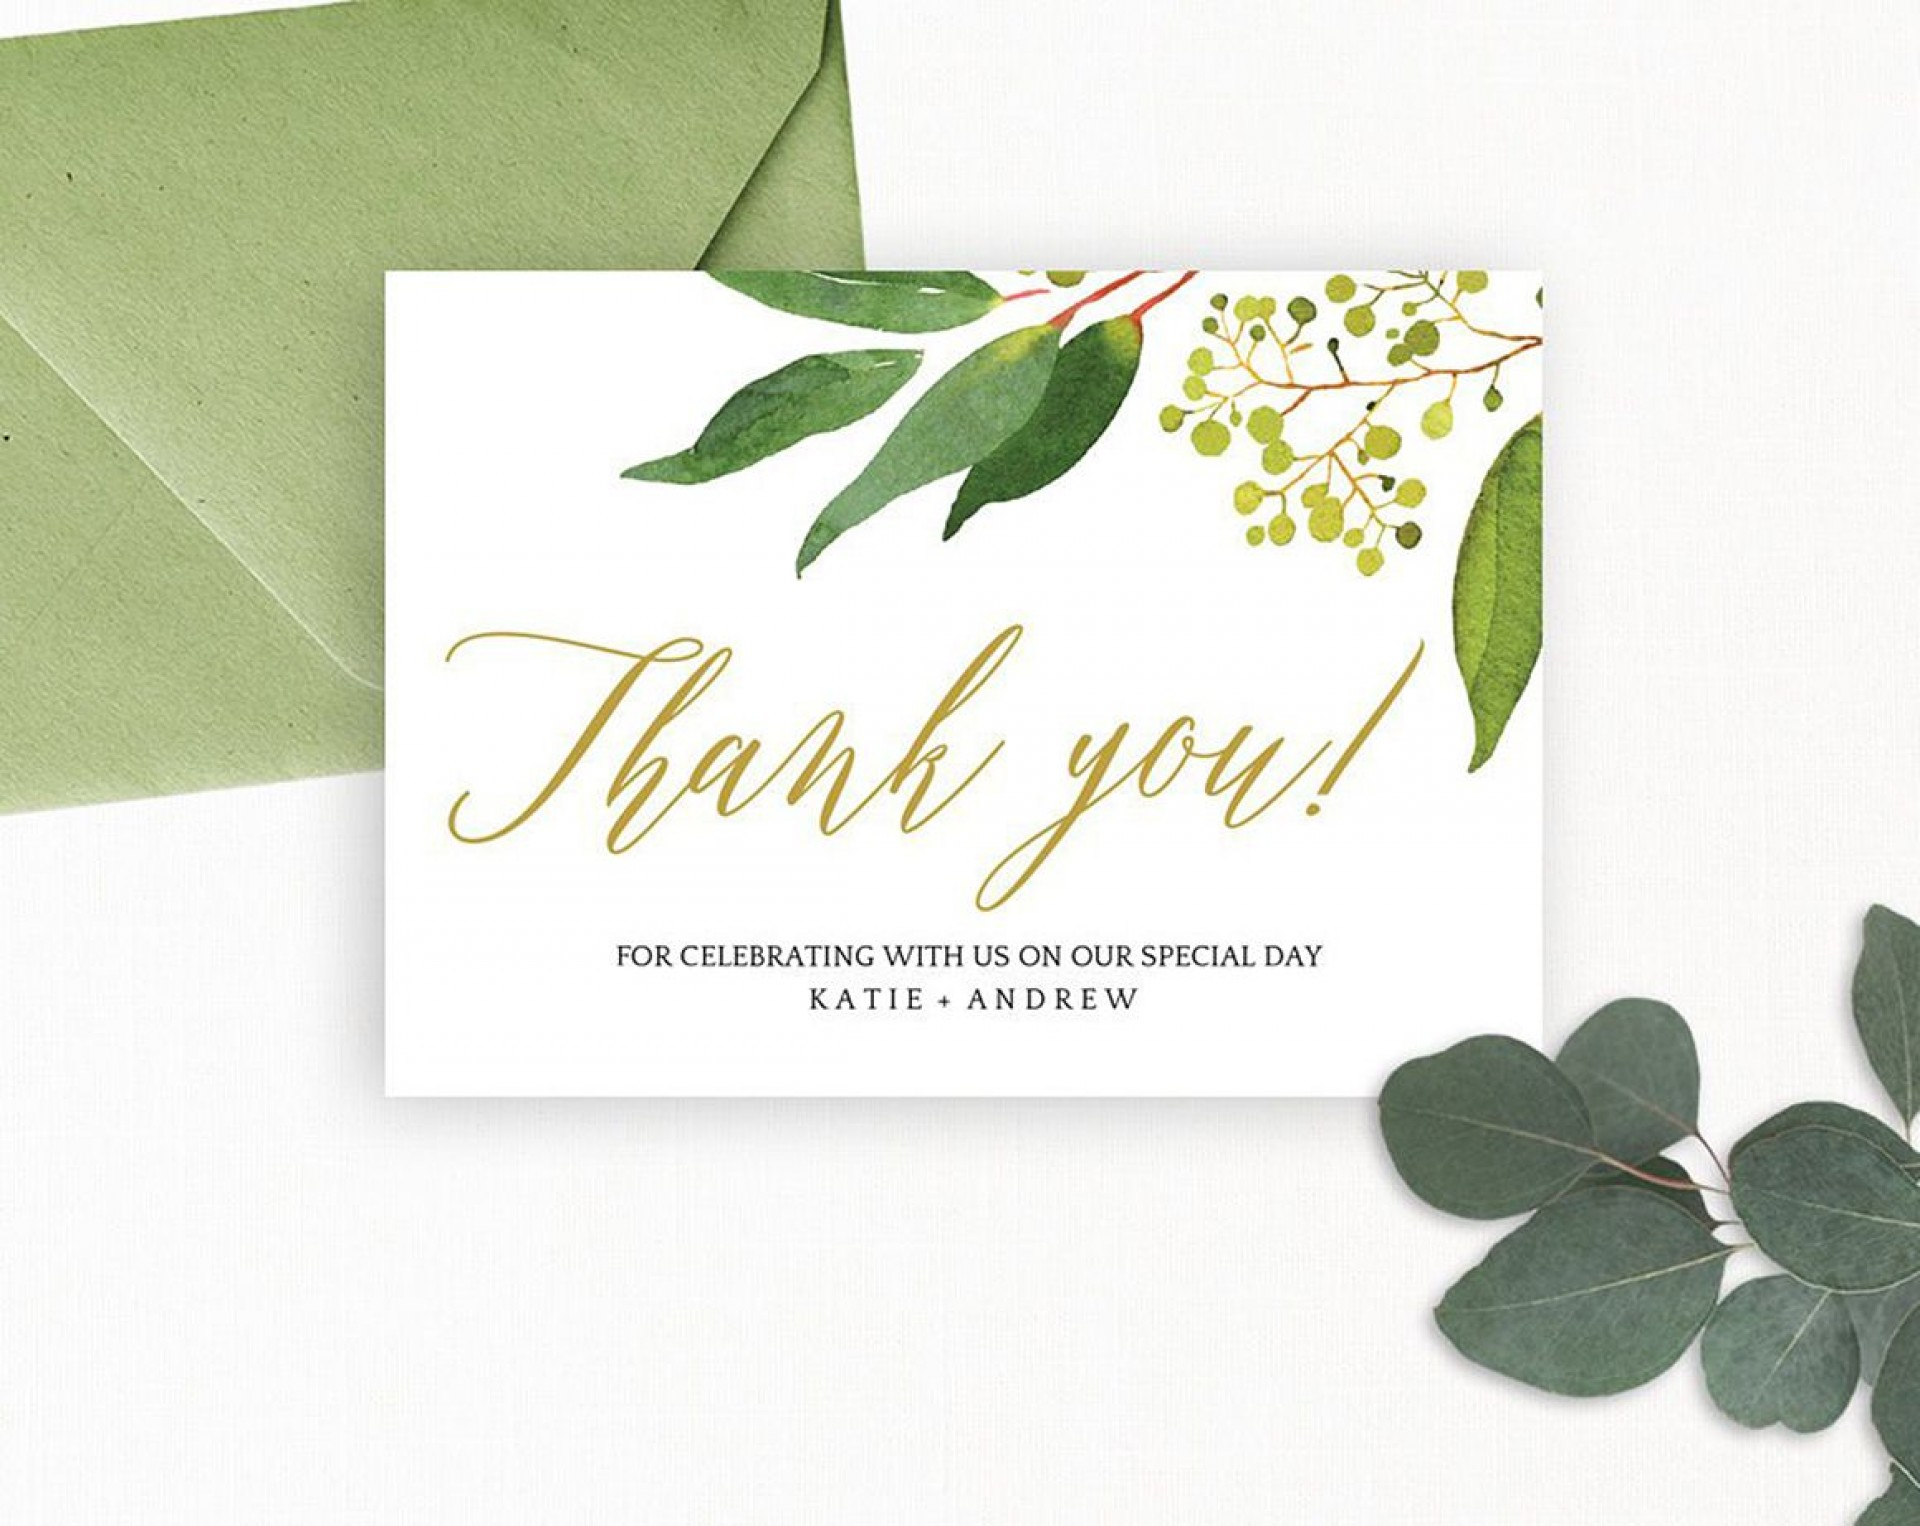 009 Impressive Thank You Note Template Wedding High Def  Card Etsy Wording1920